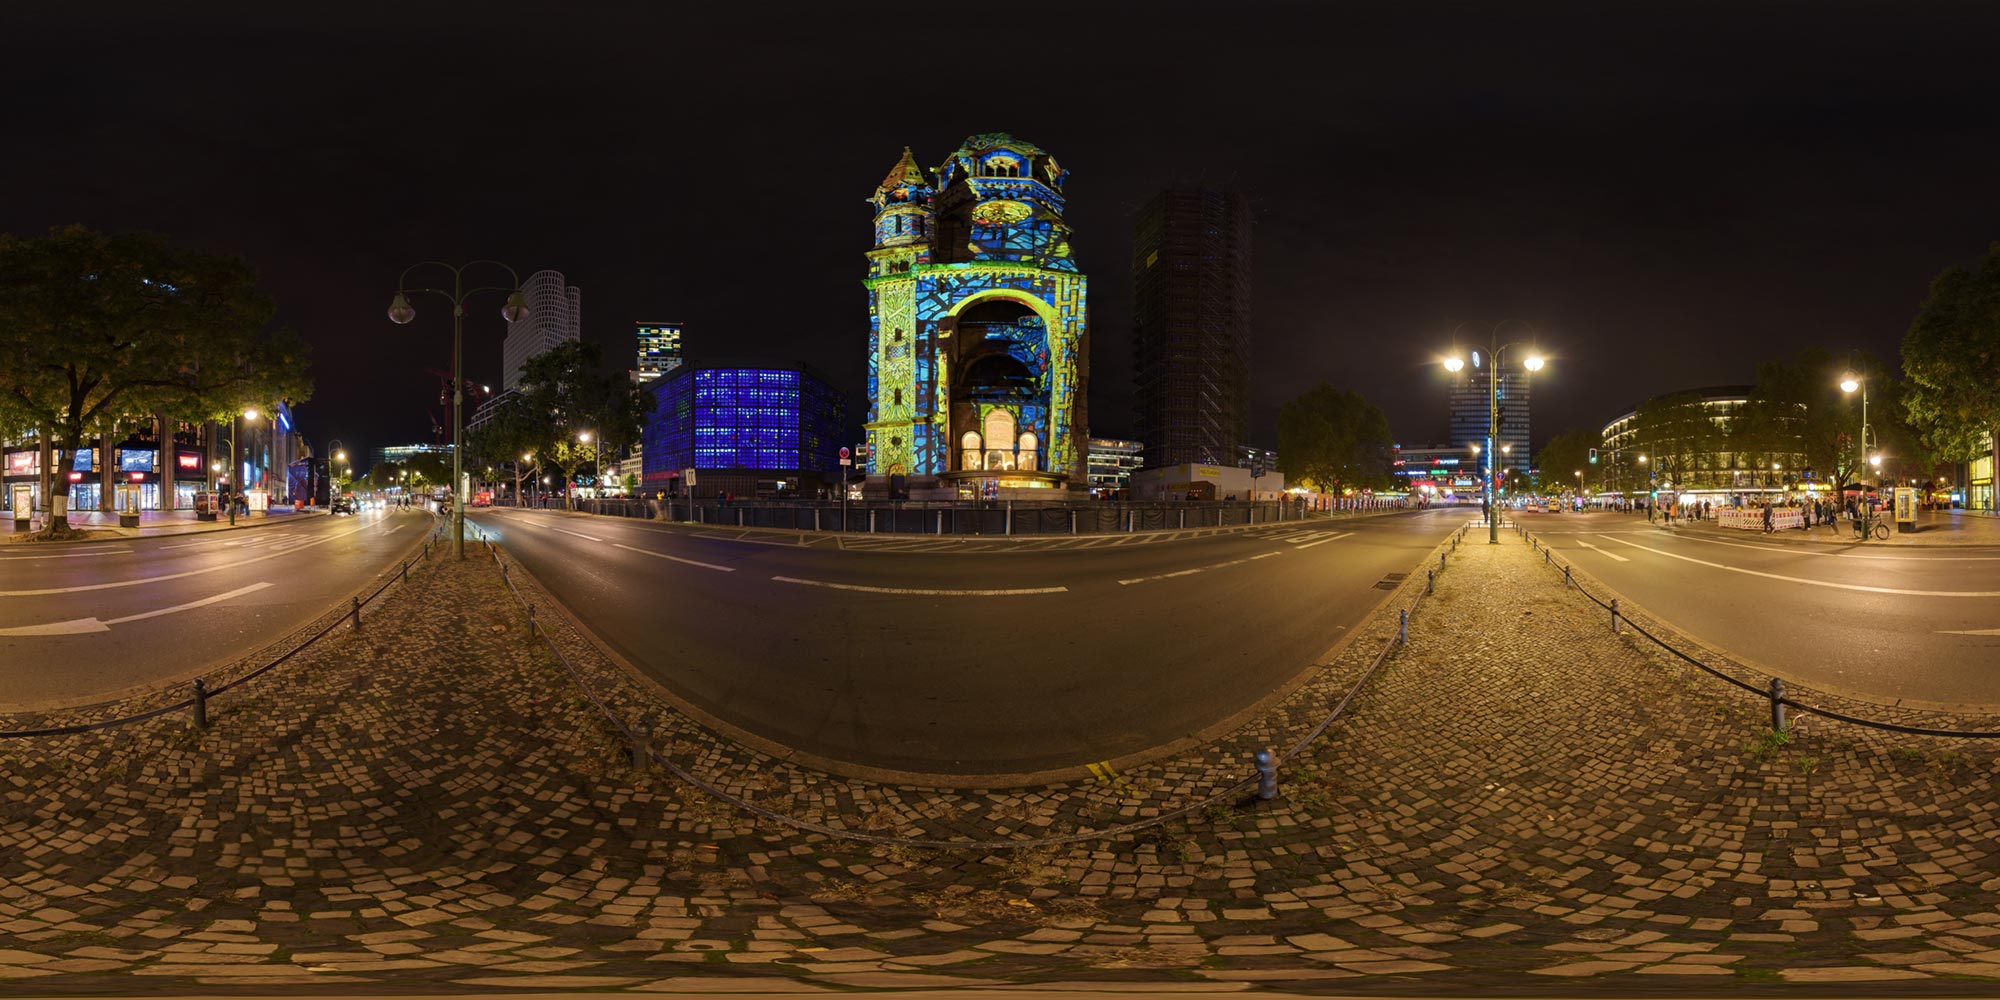 Panorama Berlin Festival of Lights - FOL 2019 Gedächtniskirche